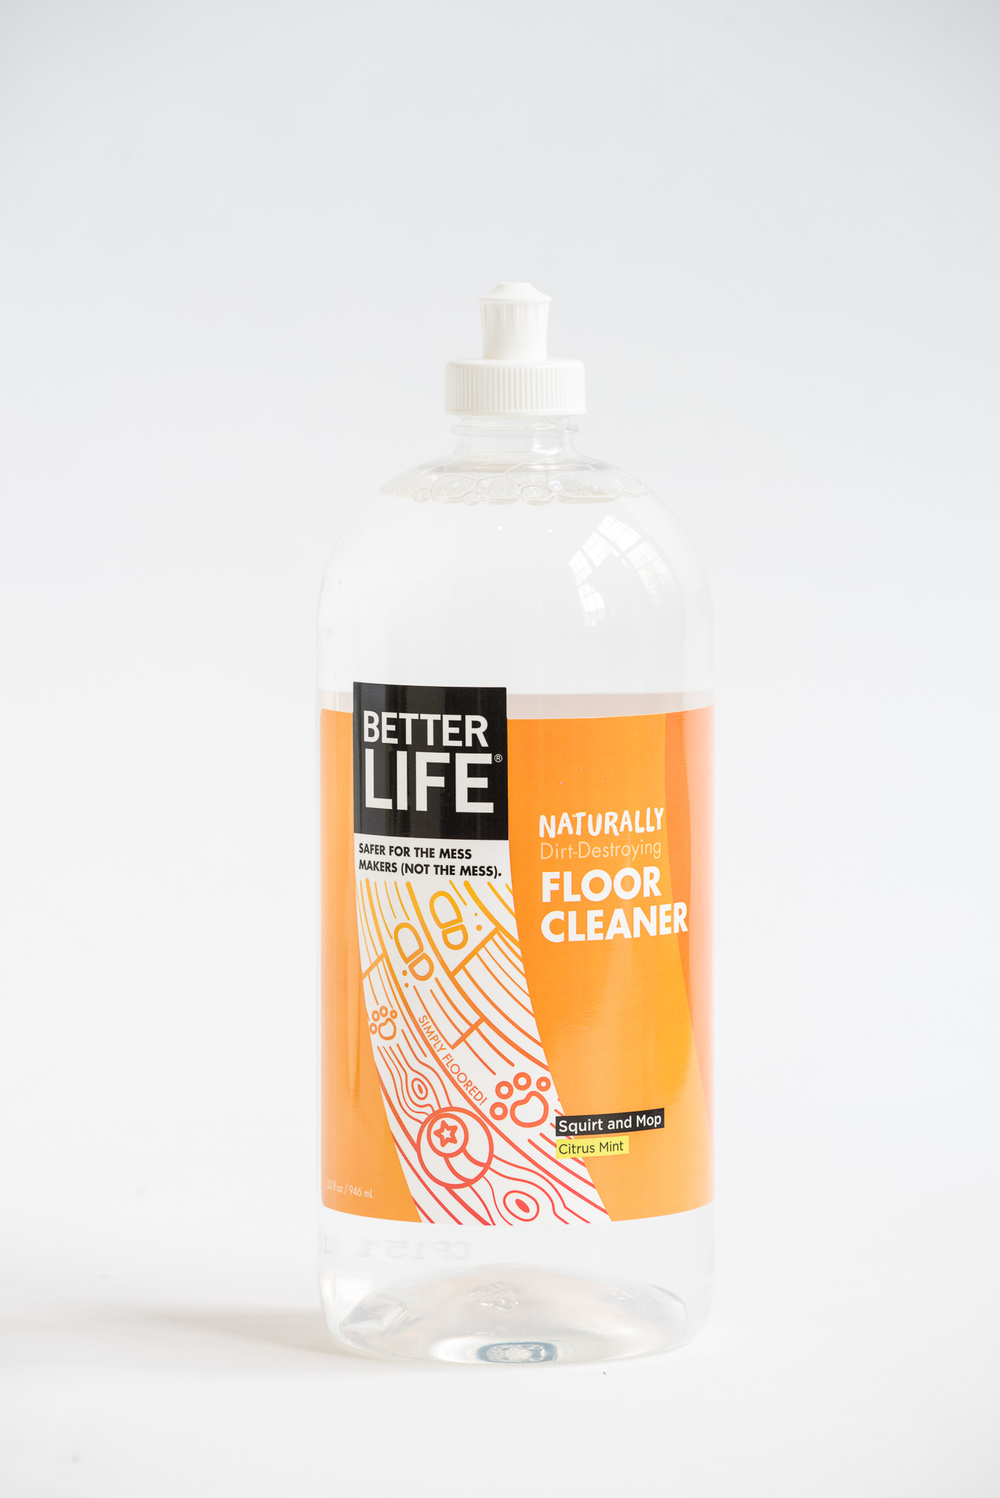 Better_Life-FloorCleanerFront.jpg